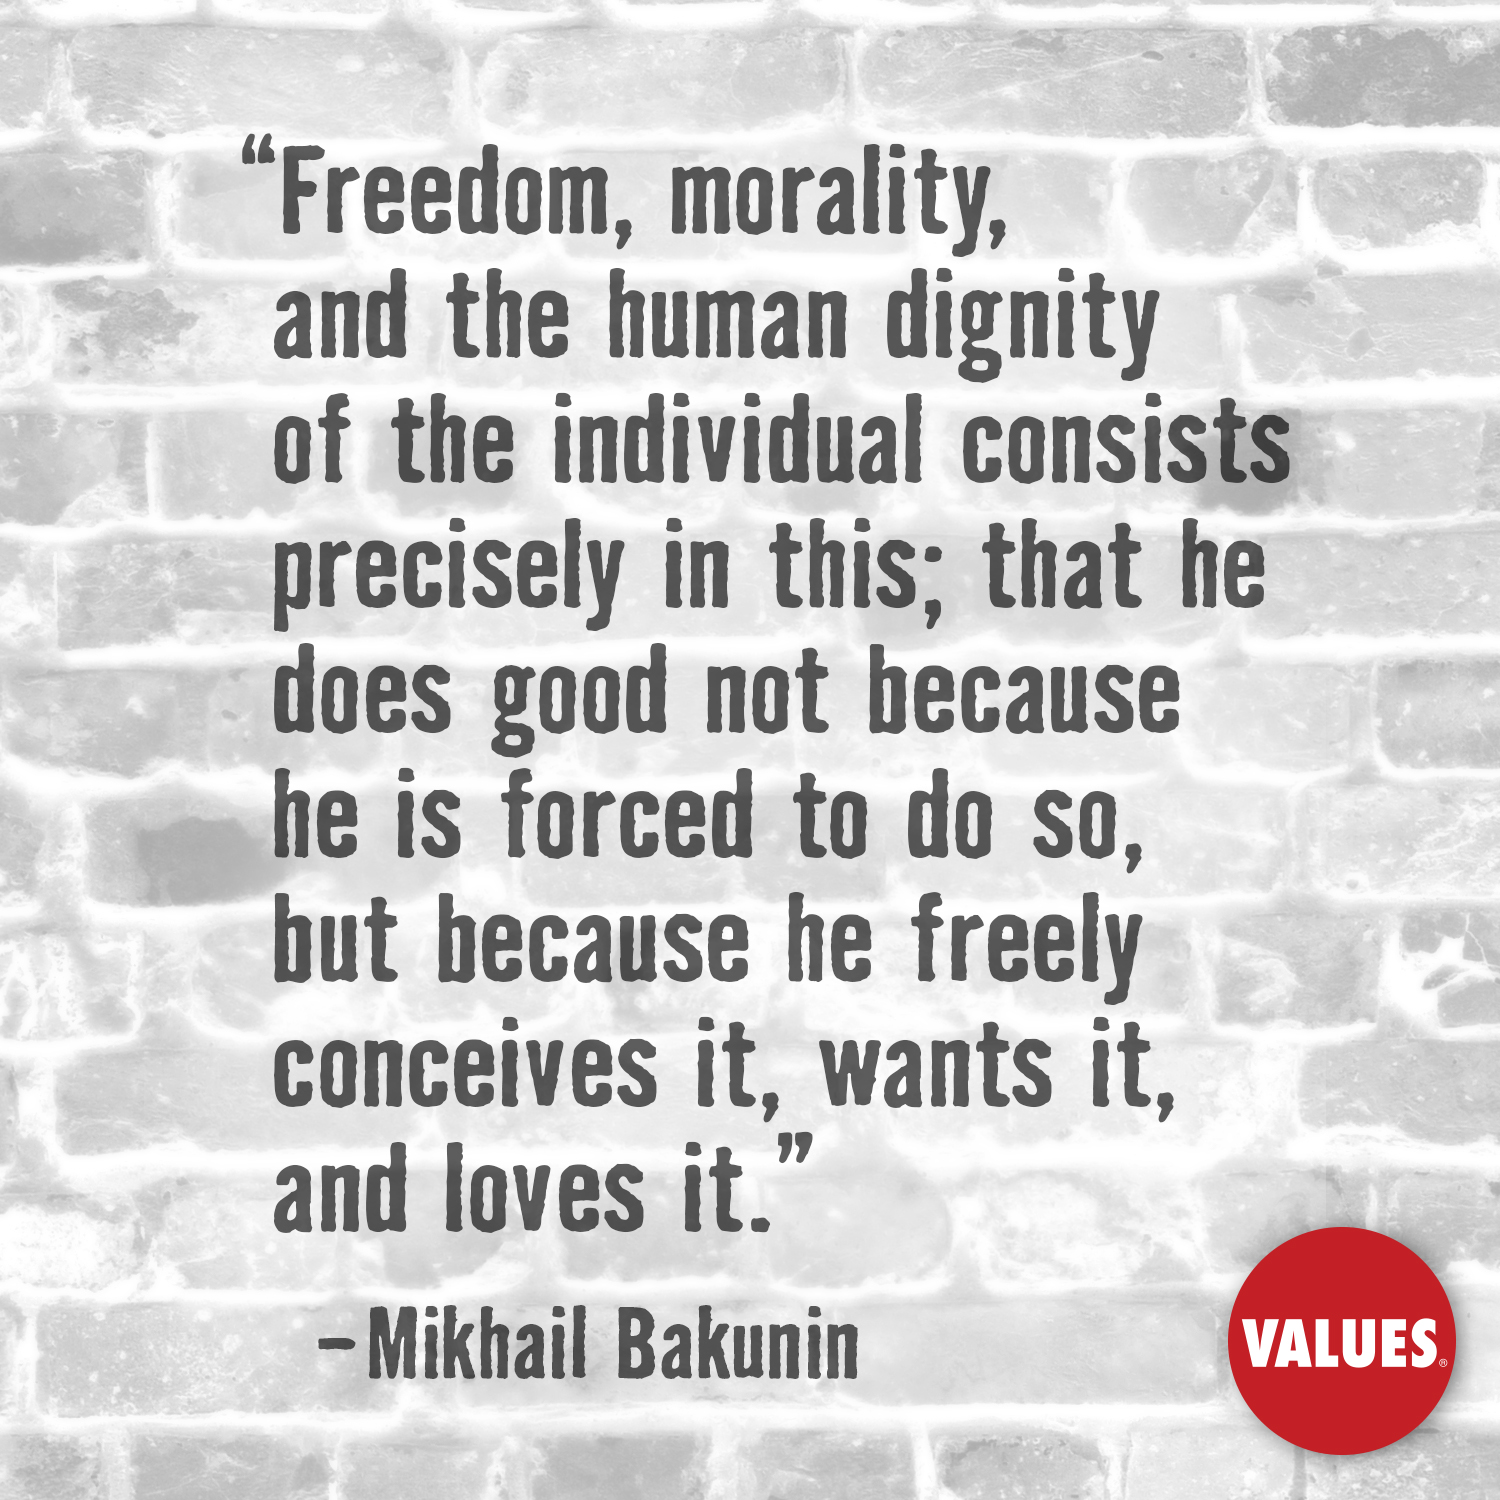 Freedom, morality, and the human dignity of the individual consists precisely in this; that he does good not because he is forced to do so, but because he freely conceives it, wants it, and loves it. —Mikhail Bakunin